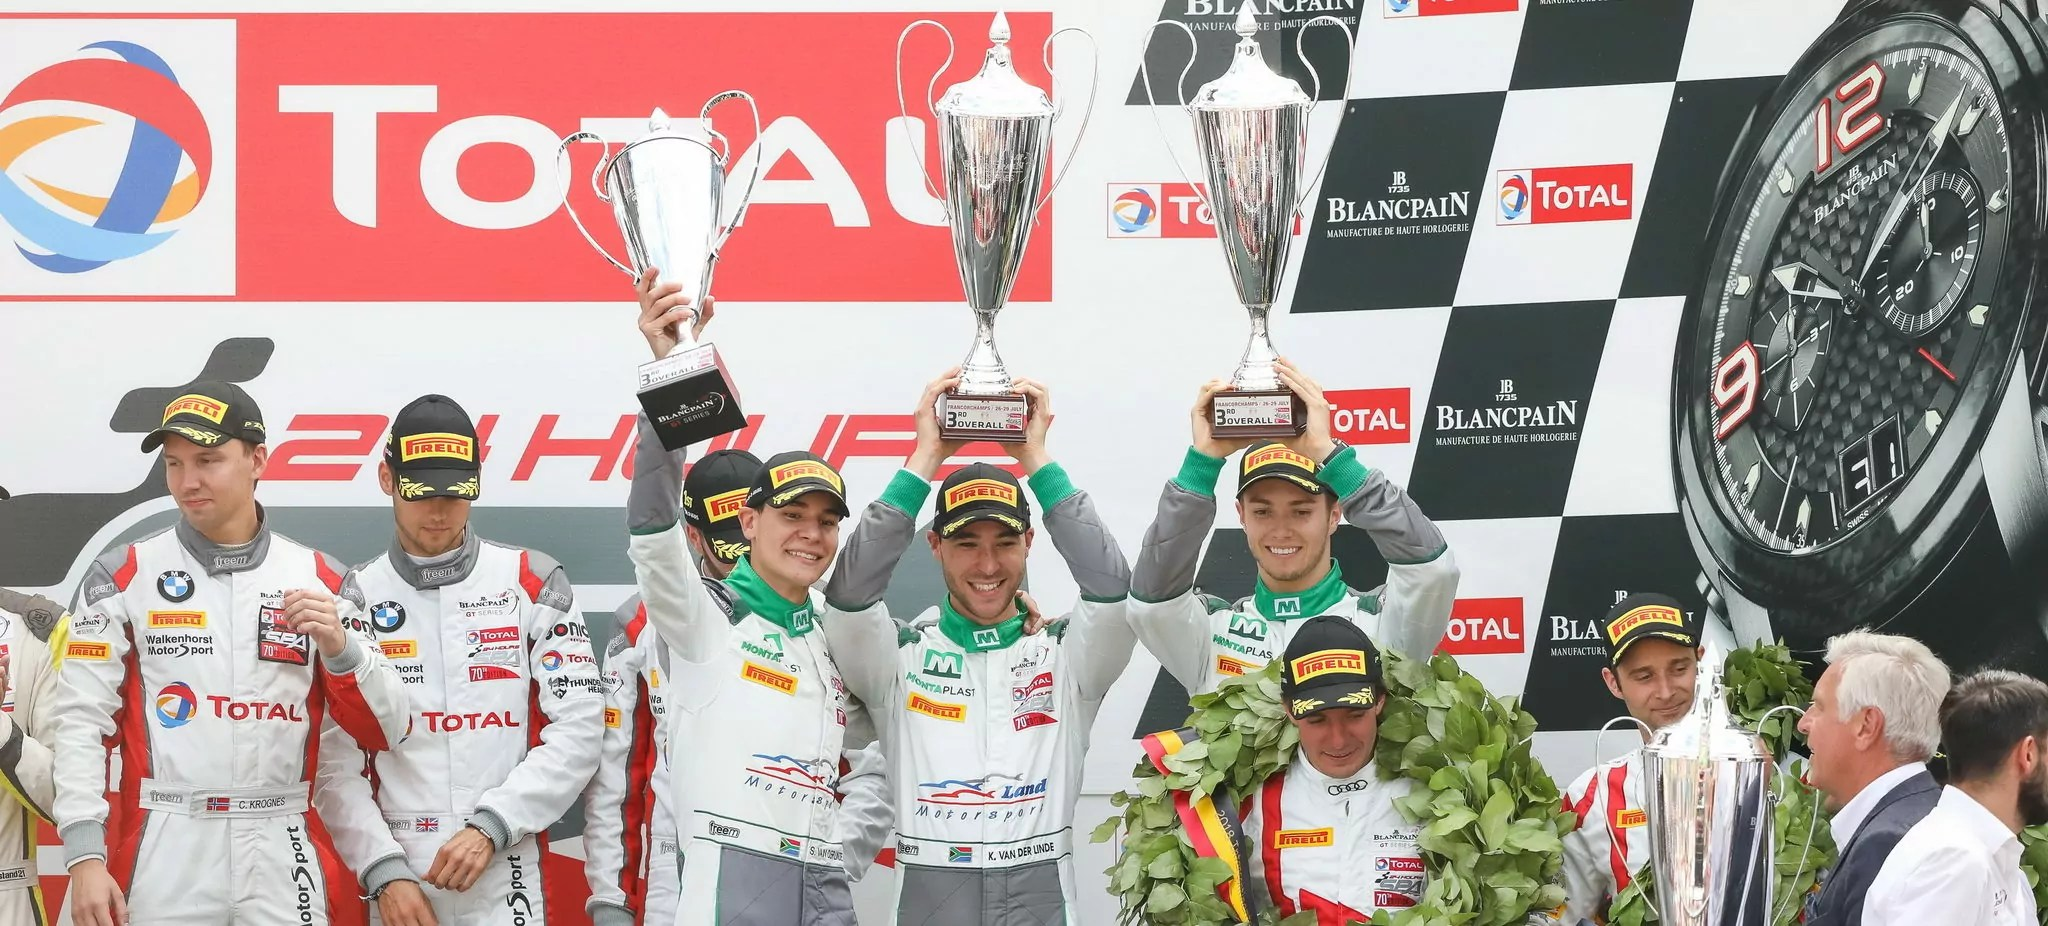 Podium for the VDL Bros in the 24H of Spa!